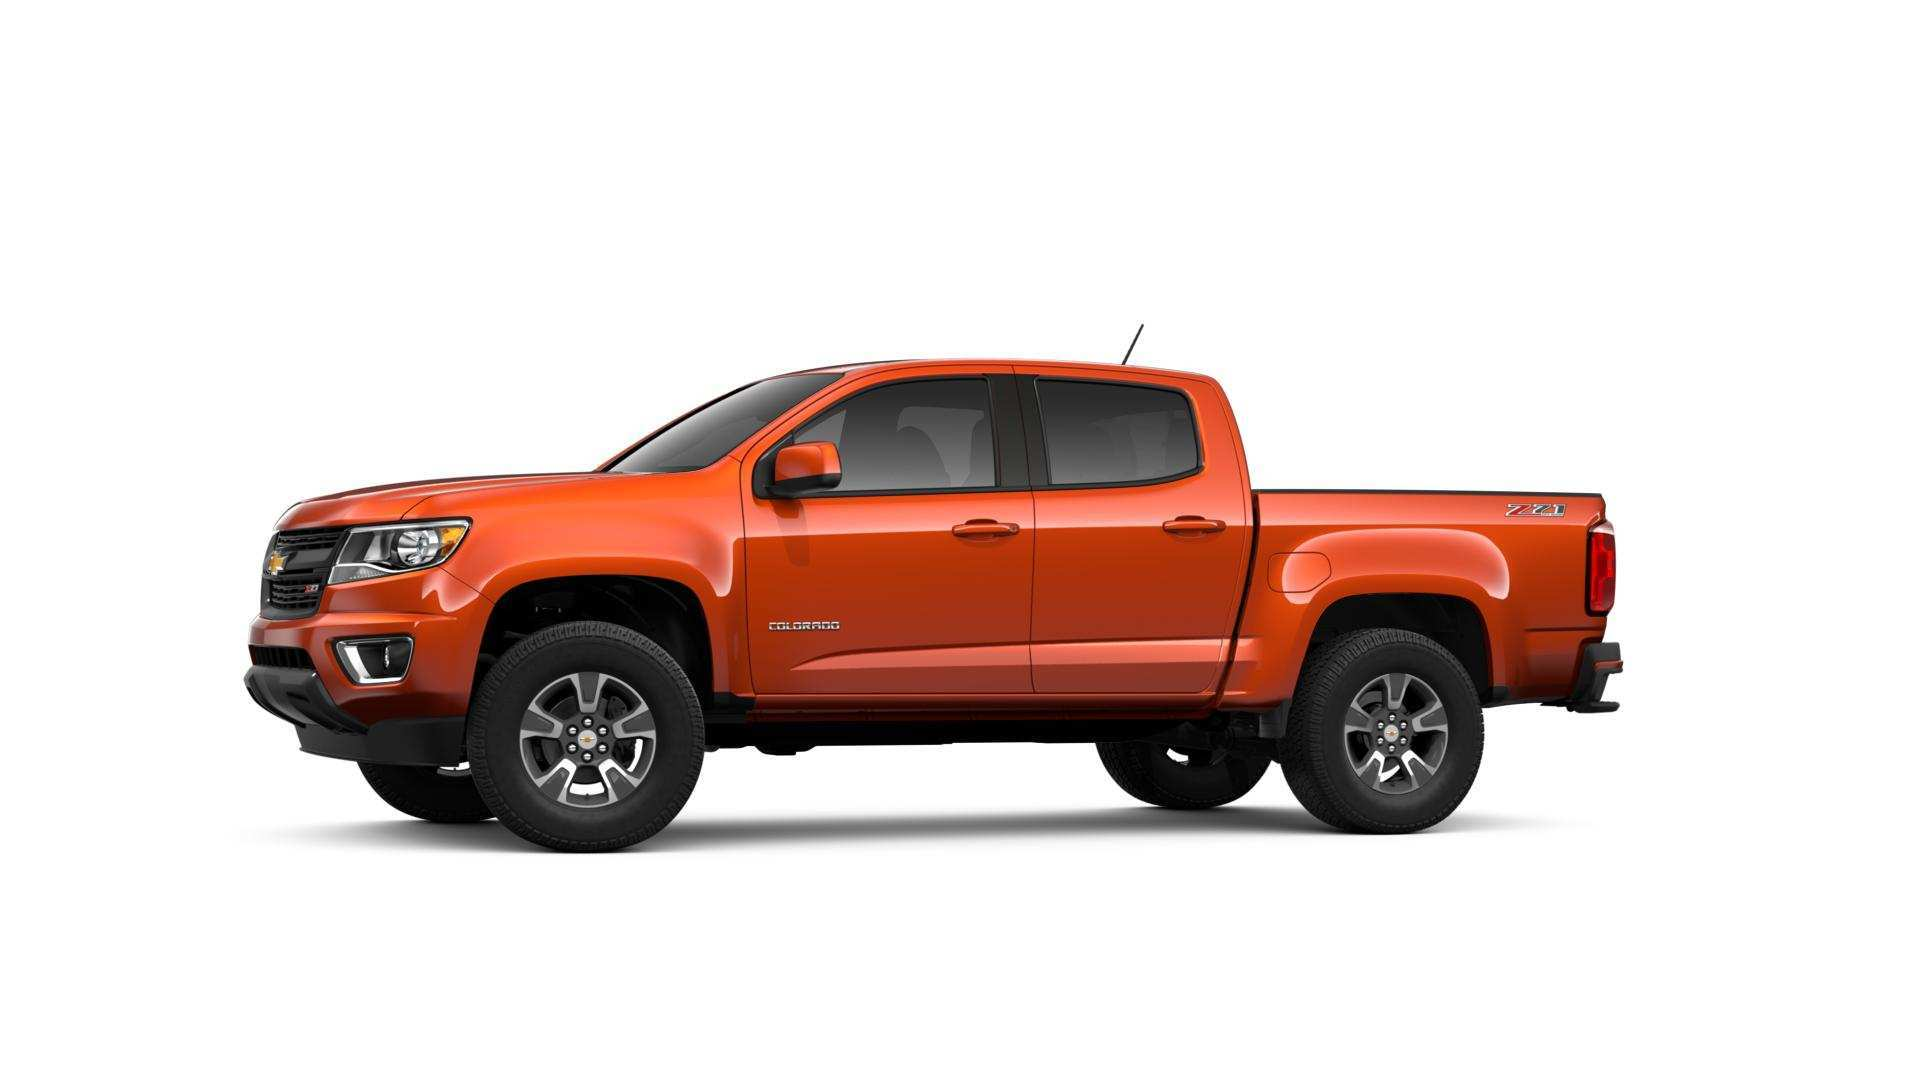 36 Gallery of 2019 Chevrolet Colorado Update Price And Review Interior by 2019 Chevrolet Colorado Update Price And Review